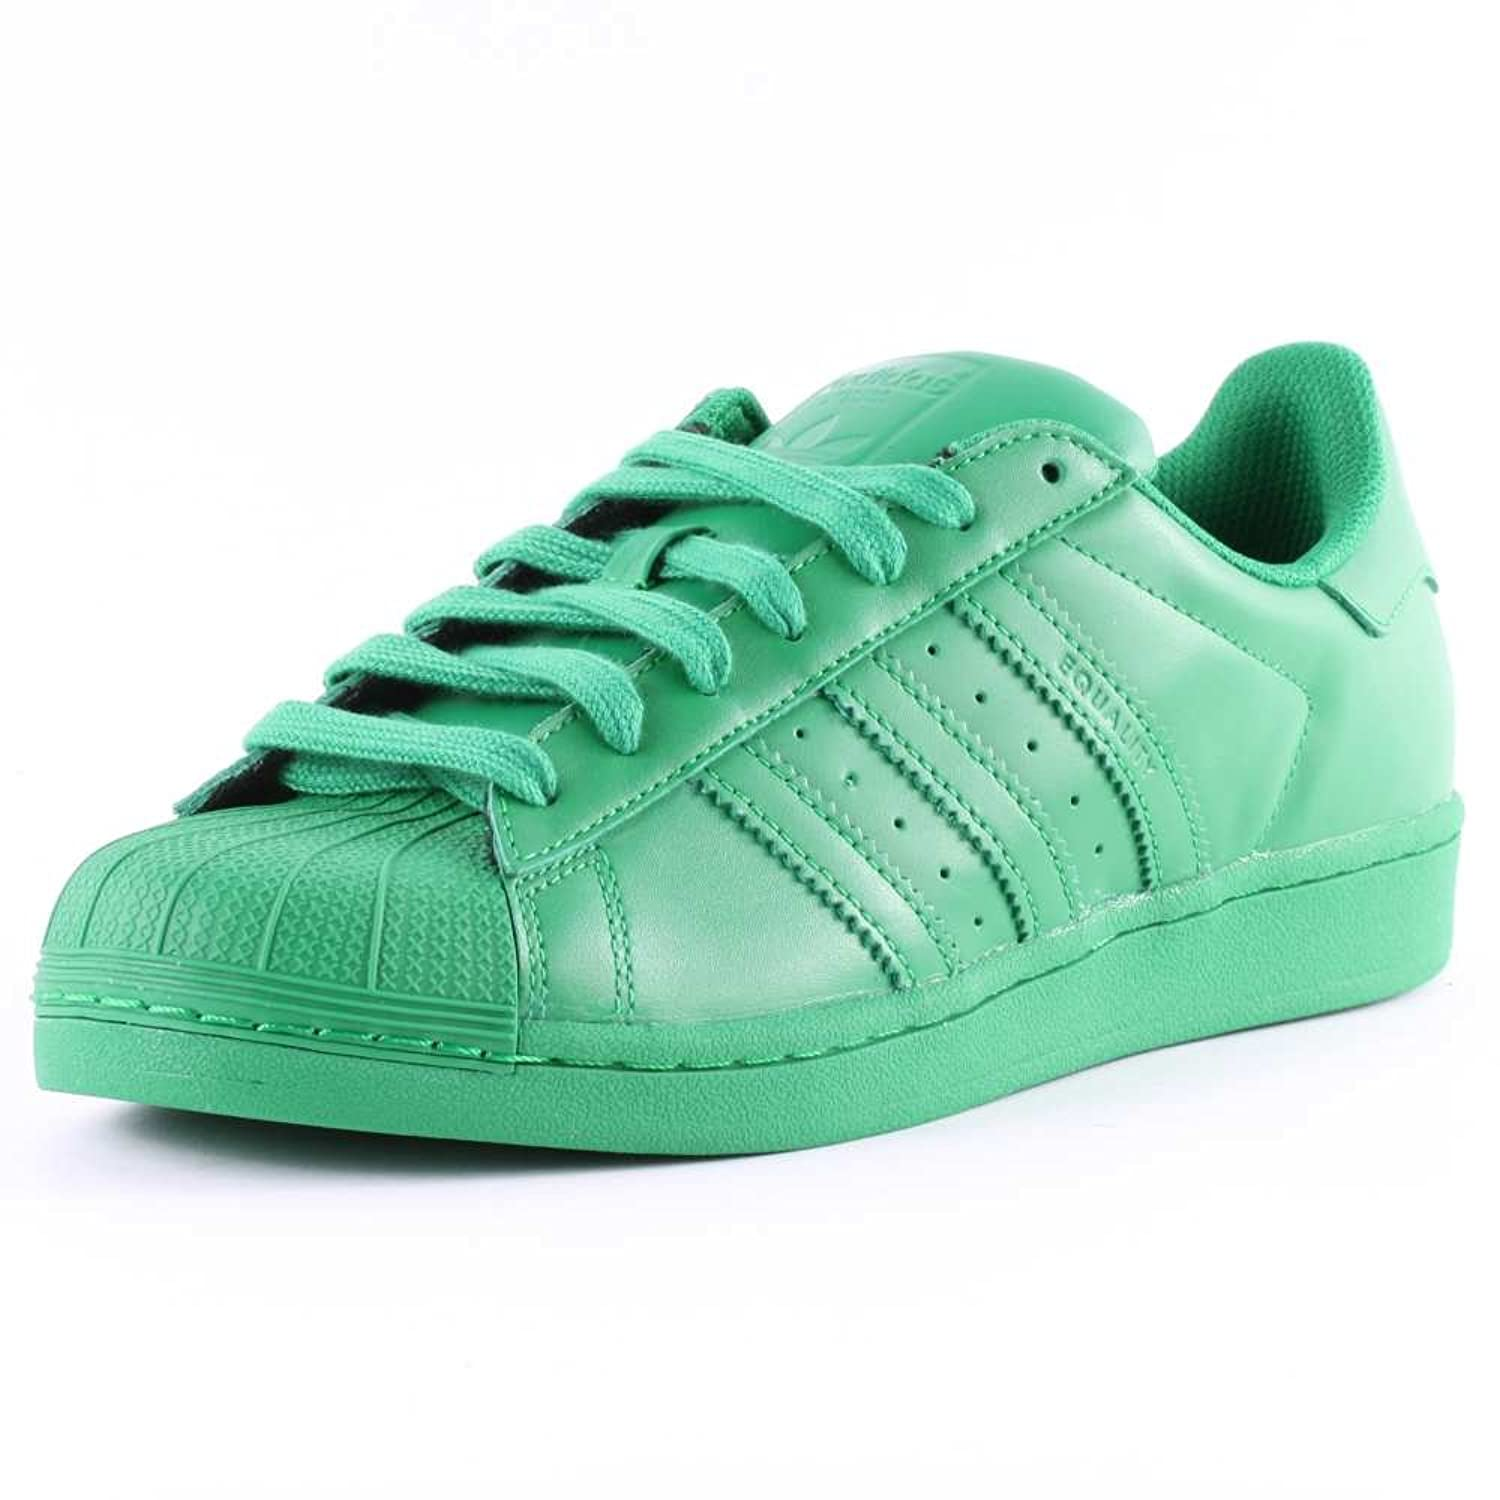 adidas superstar arcobaleno amazon